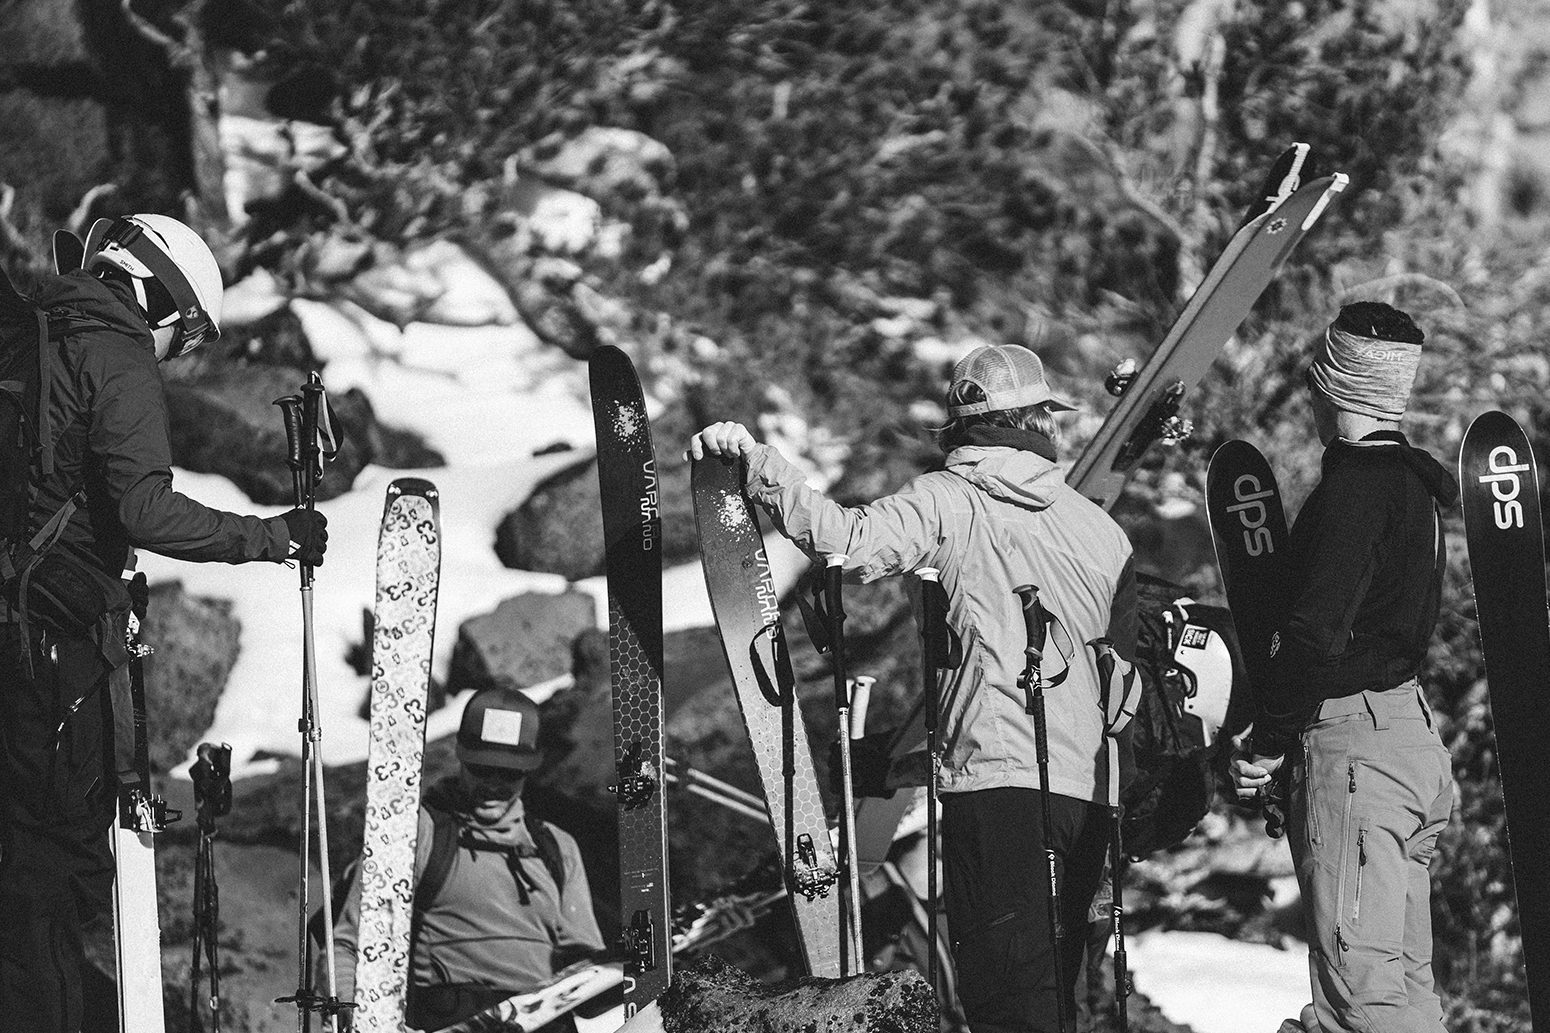 People gathered with skiing equipment